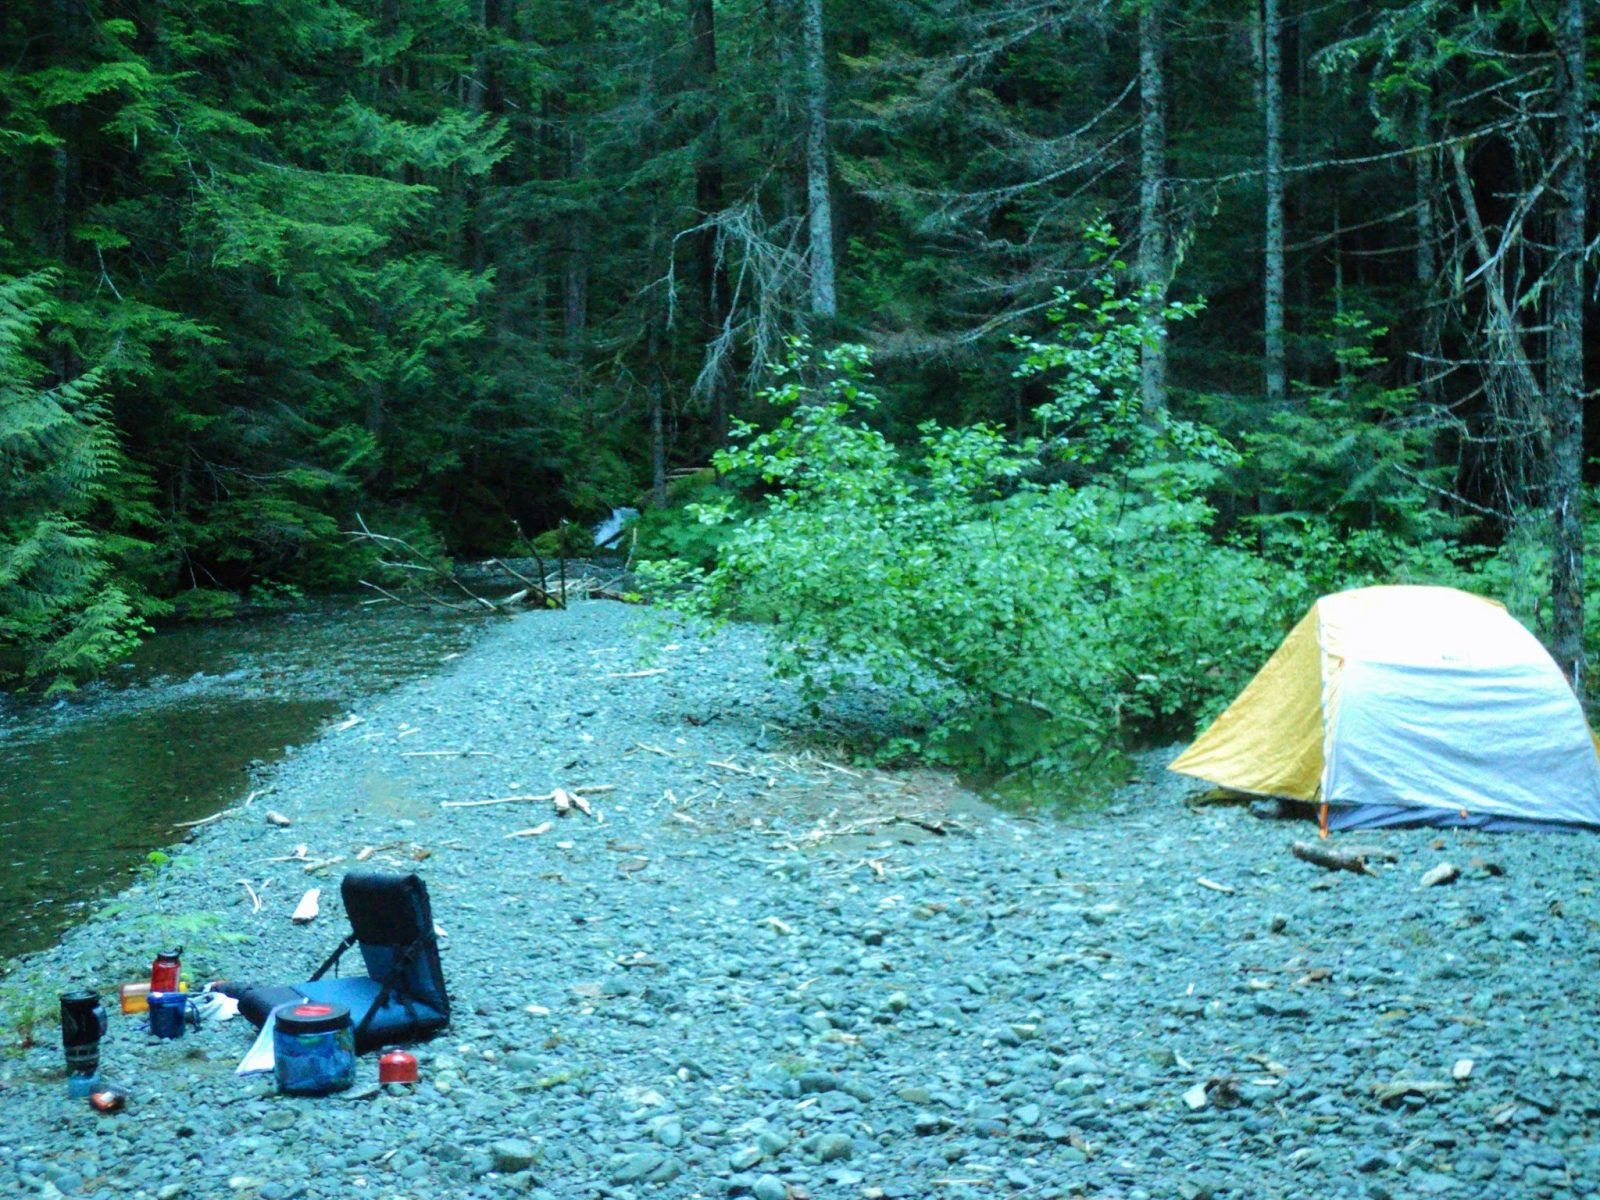 A gravel bar next to a creek in an evergreen tree forest. There is a yellow and white tent set up on the gravel and camping equipment for cooking dinner nearby.